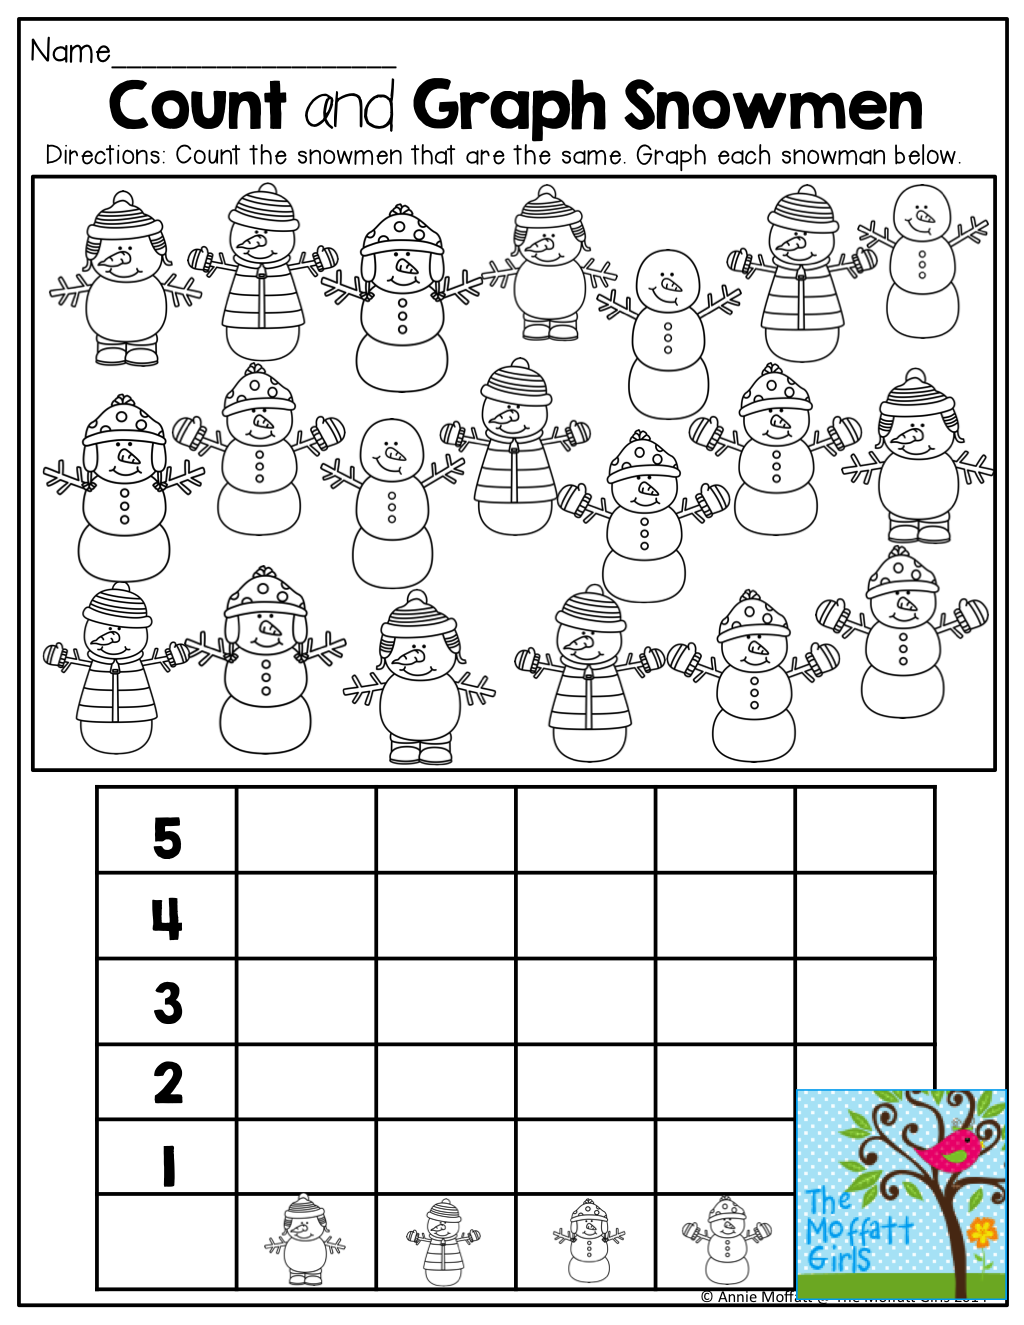 Count and graph snowmen tons of great printables kinderland count and graph snowmen tons of great printables robcynllc Choice Image